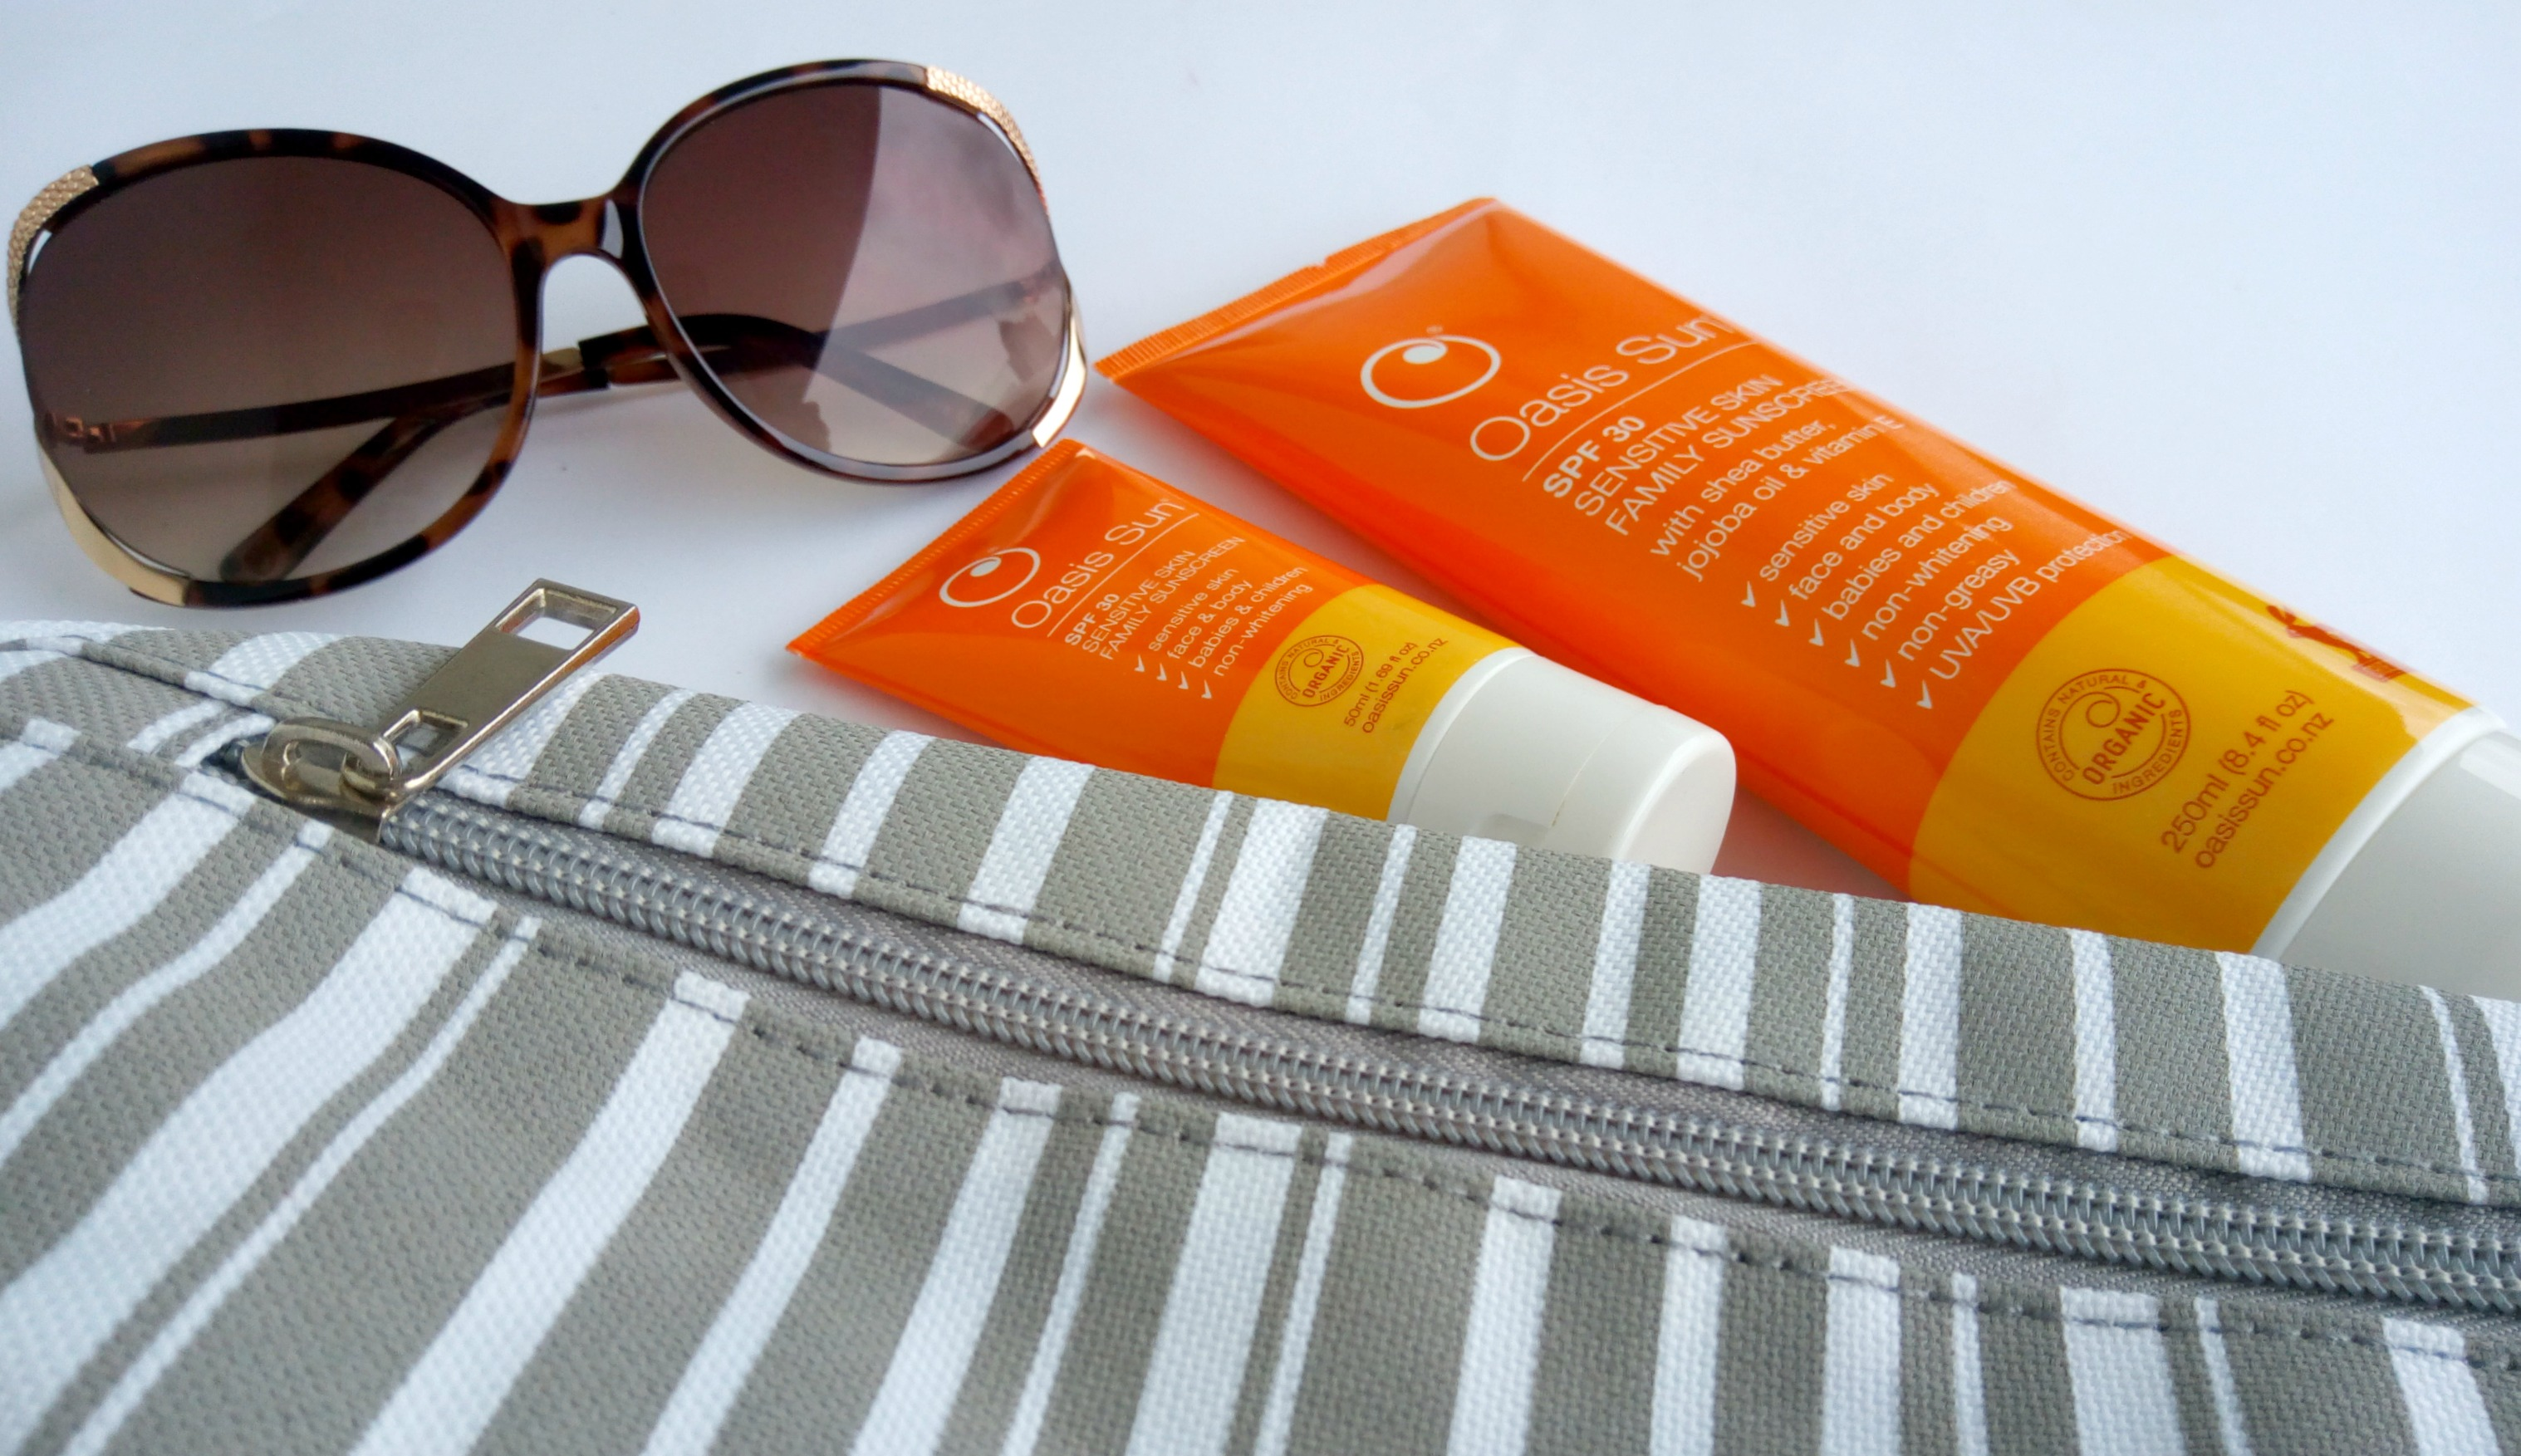 Oasis Sun SPF30 Sensitive Skin Family Sunscreen